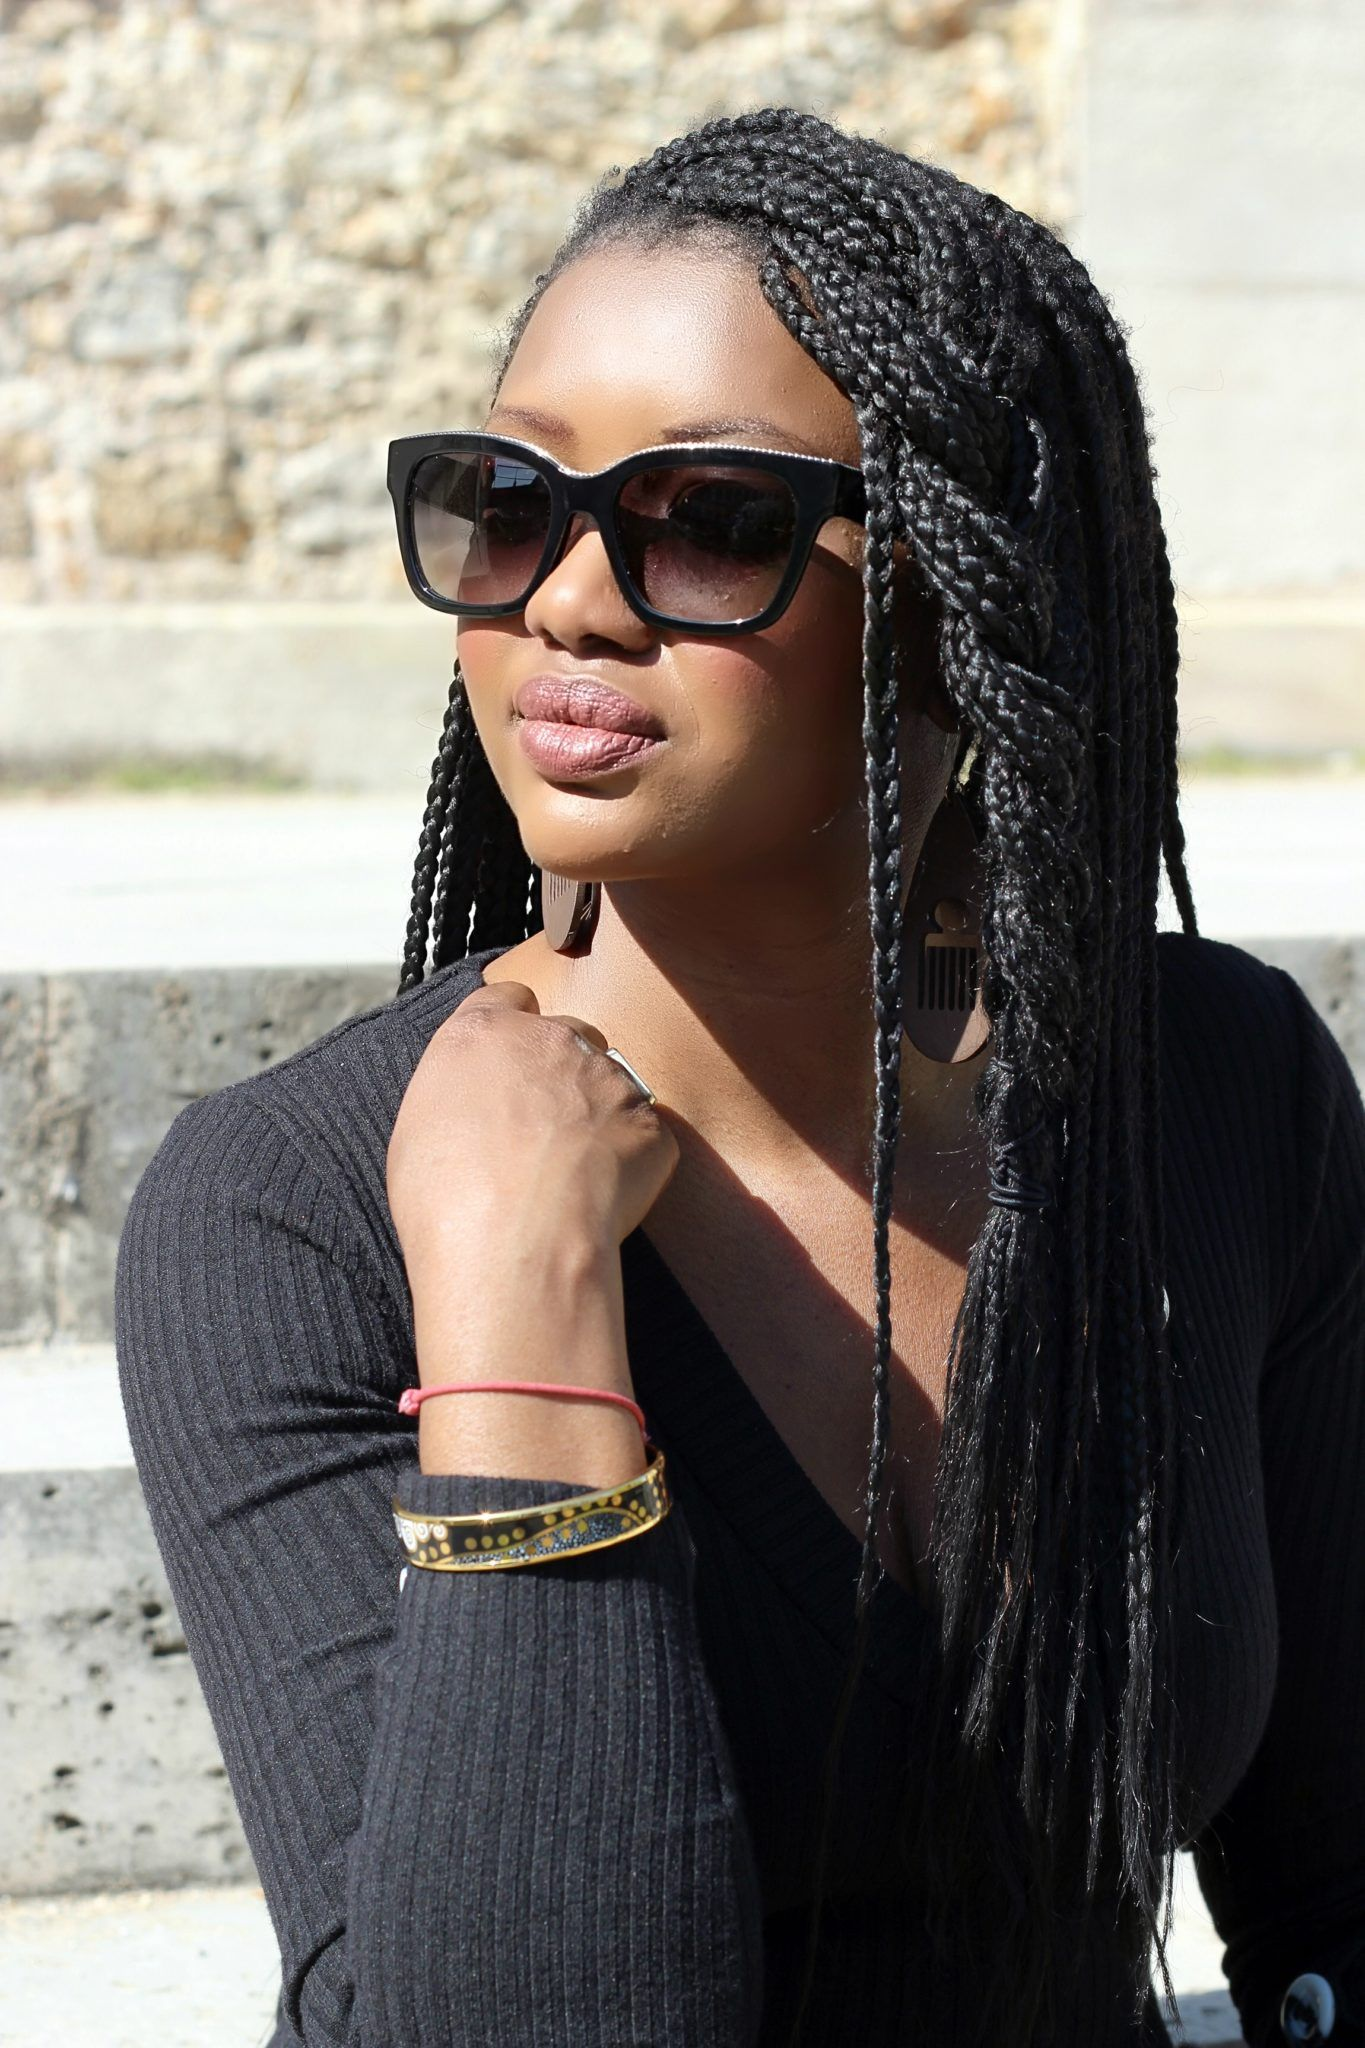 Camo In The City Timodelle Magazine Box Braids Hairstyles Coiffures De Filles Noires Tresses Afro